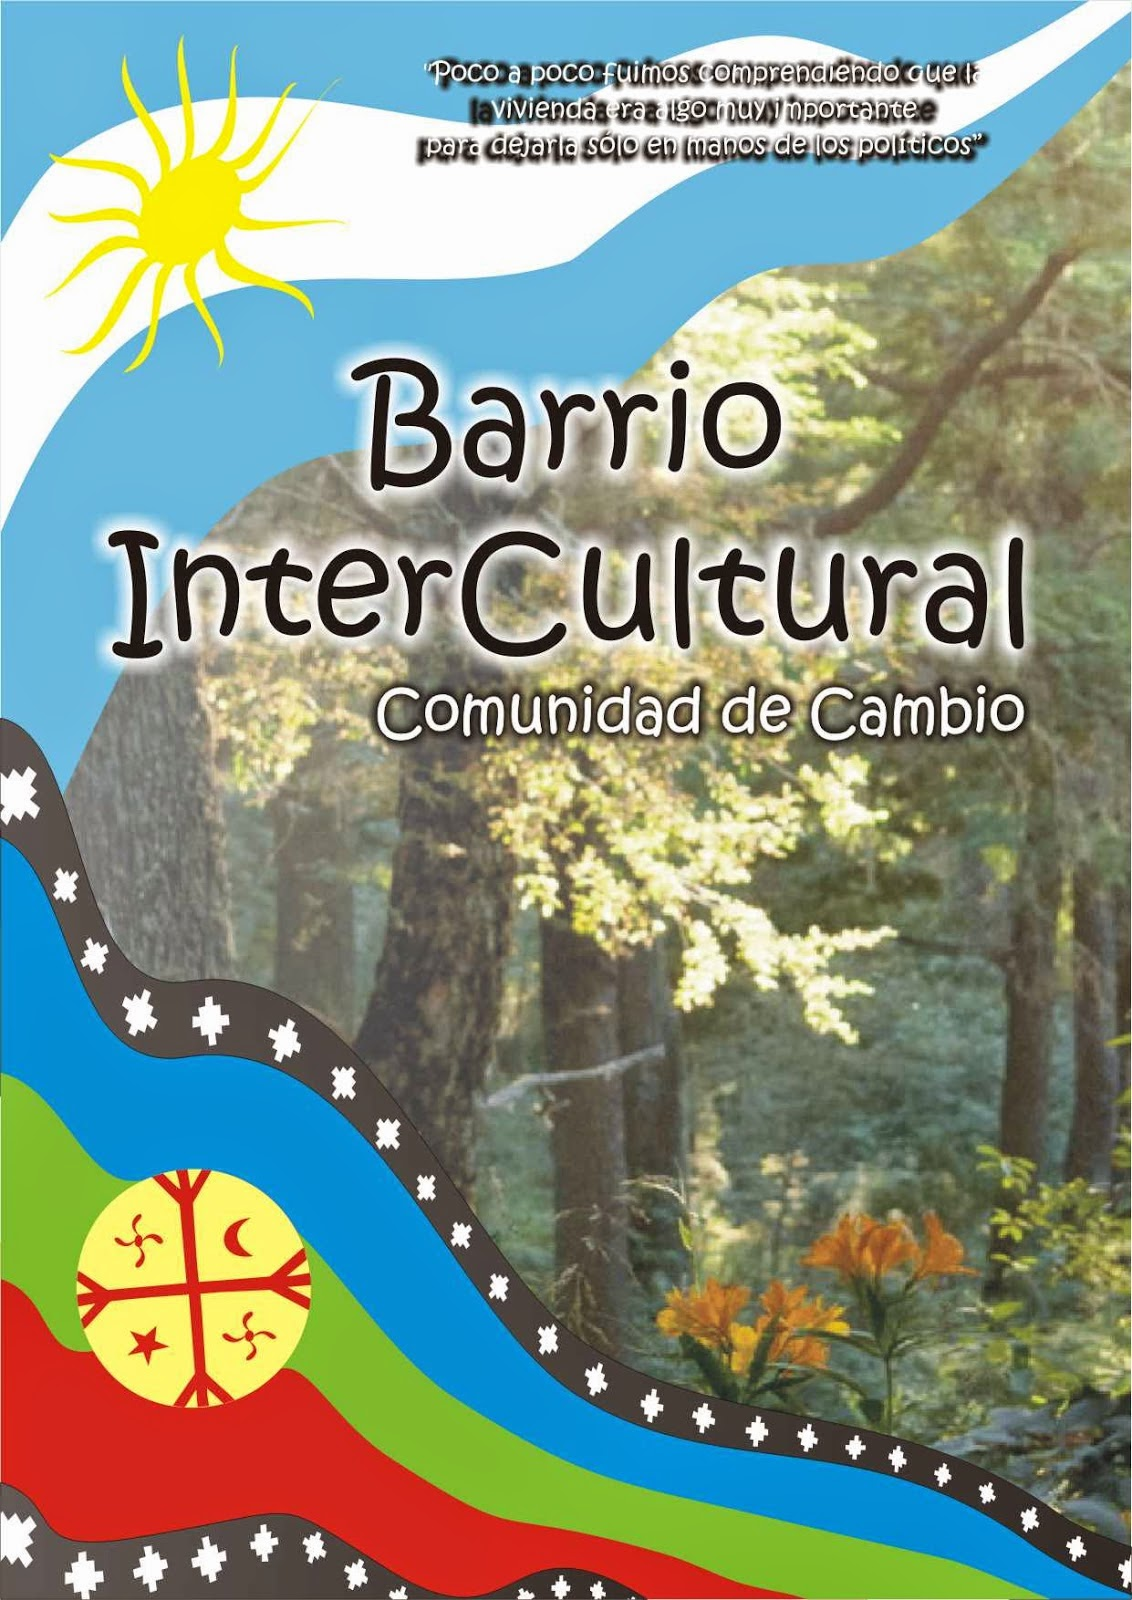 Barrio InterCultural